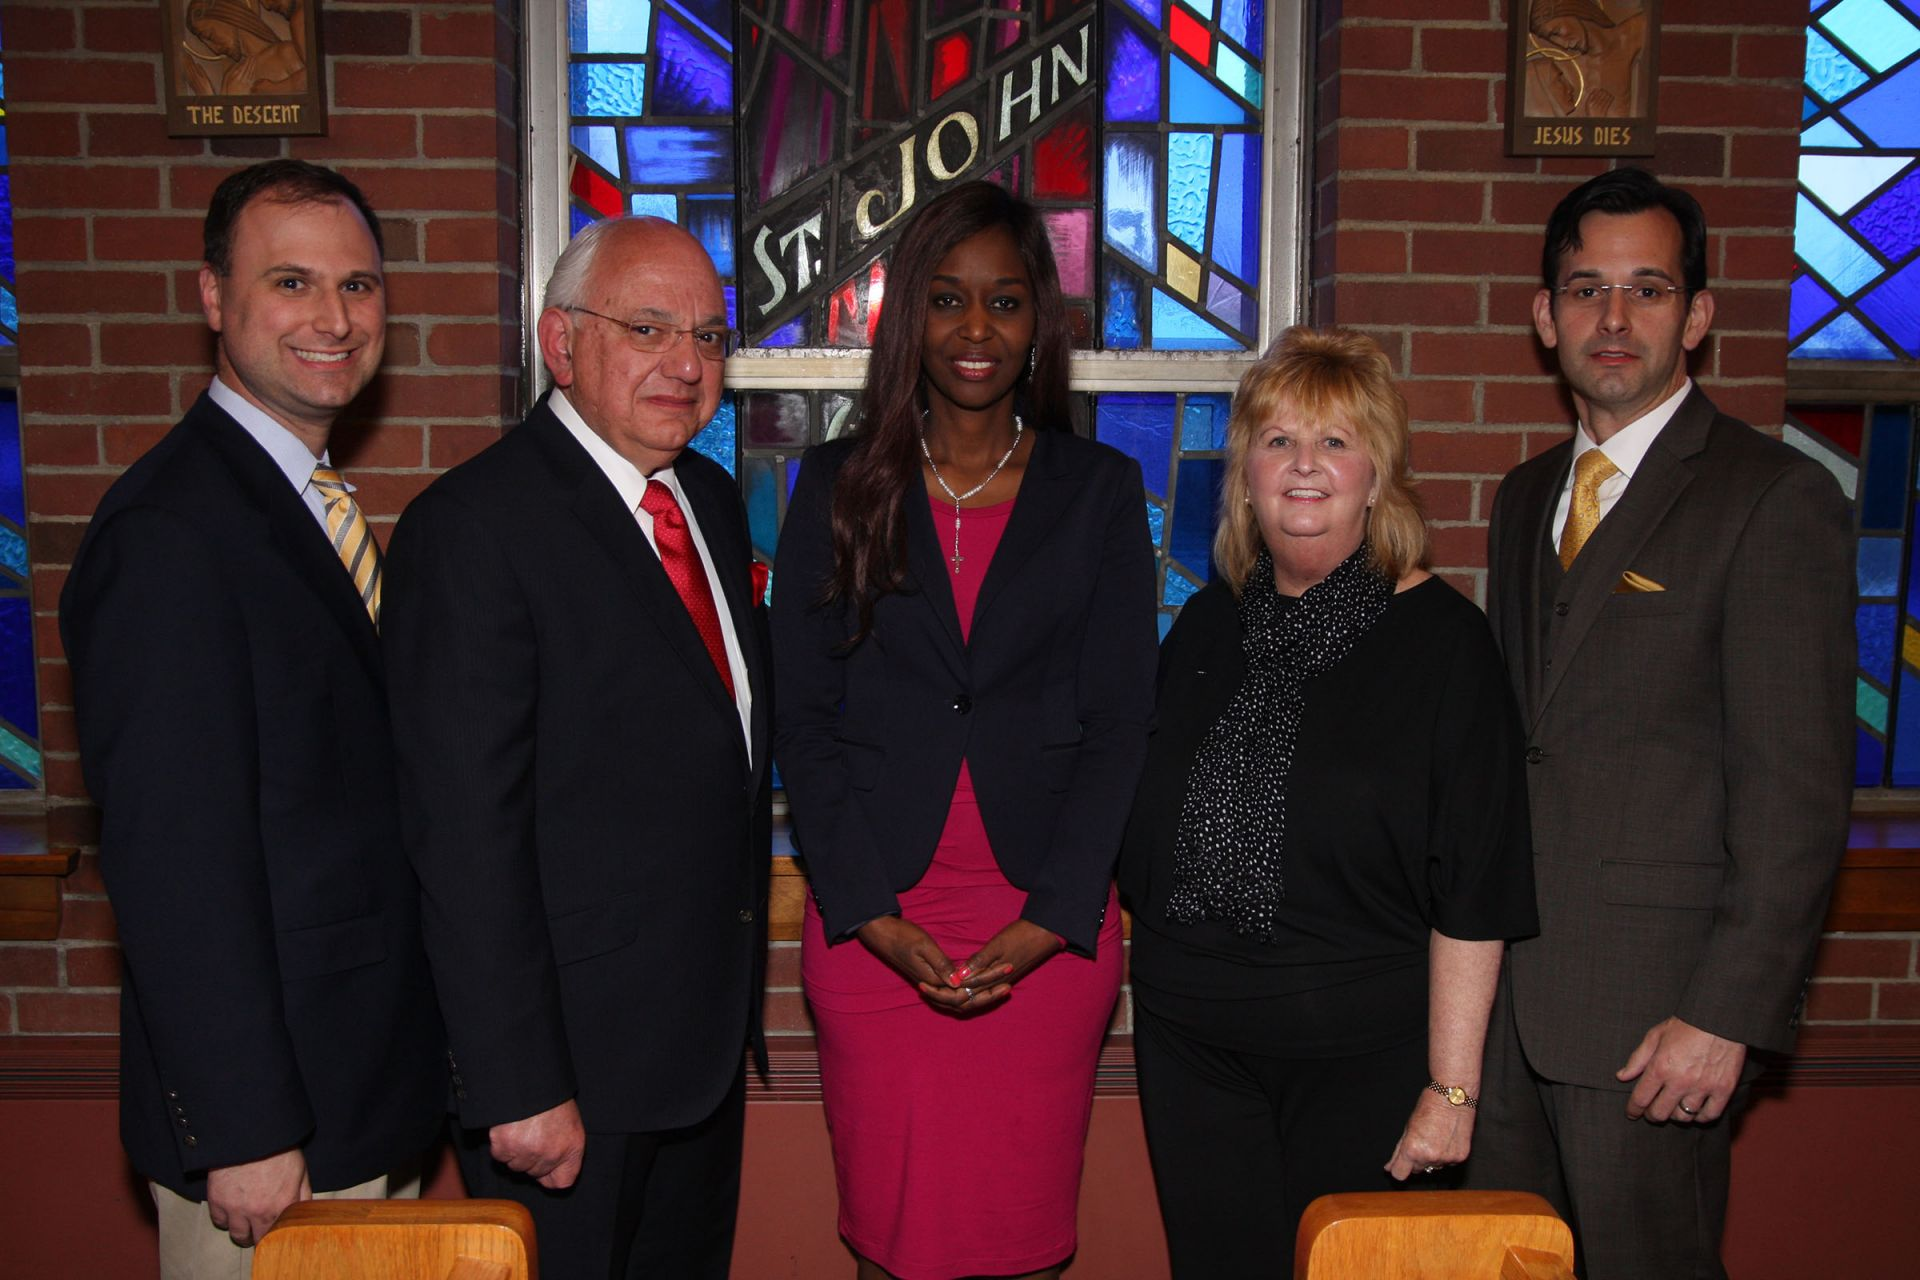 Immaculee Ilibagiza and the Abdella family in the Chapel